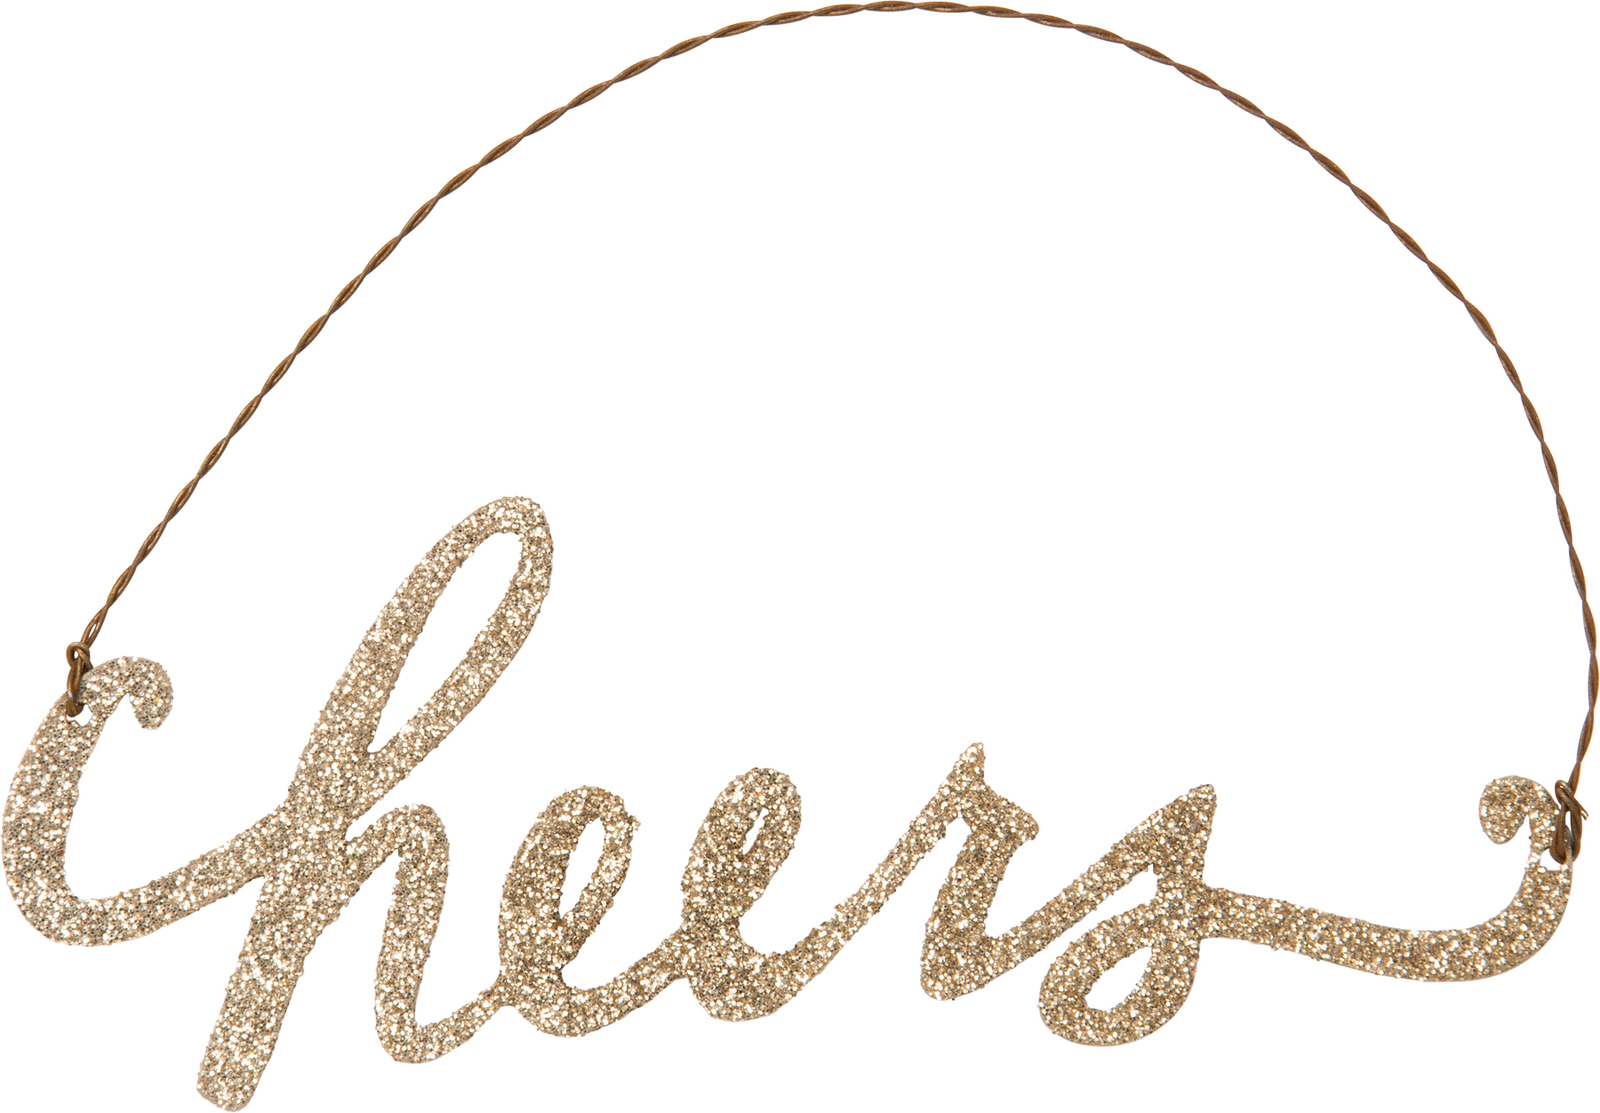 Primary image for PBK New Years Decor - Cheers Gold Glitter Ornament